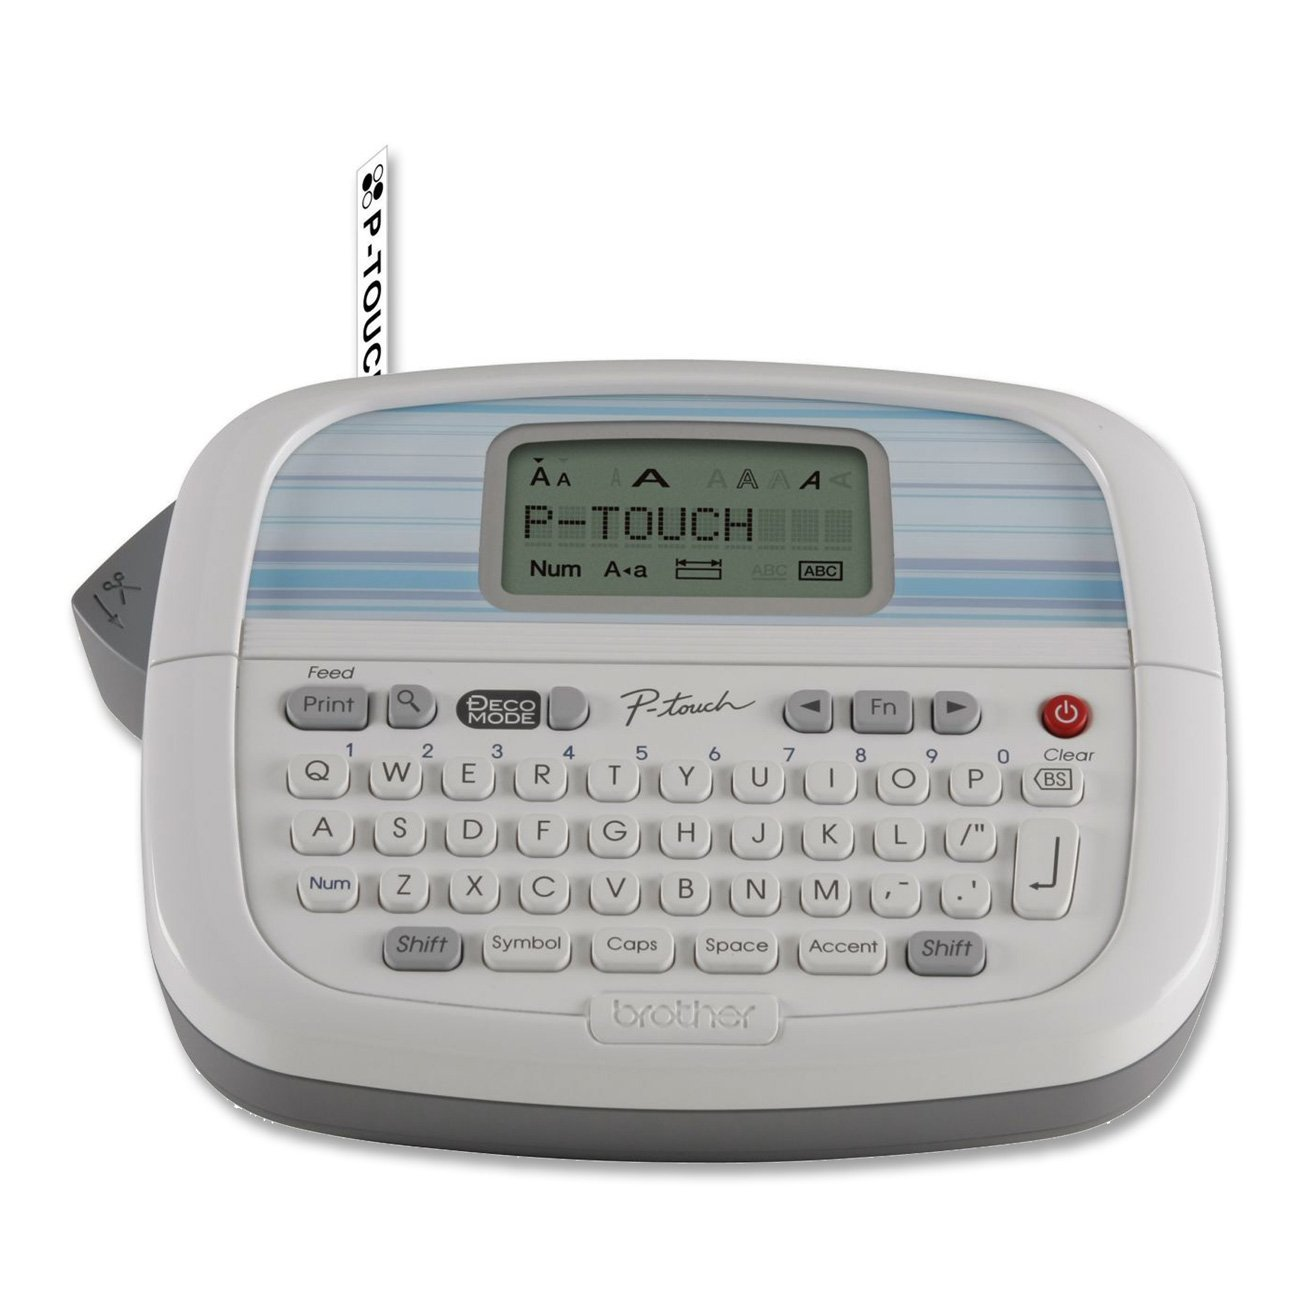 Brother P-touch PT-90 Label Maker Sale B002M7W9GW $9.99